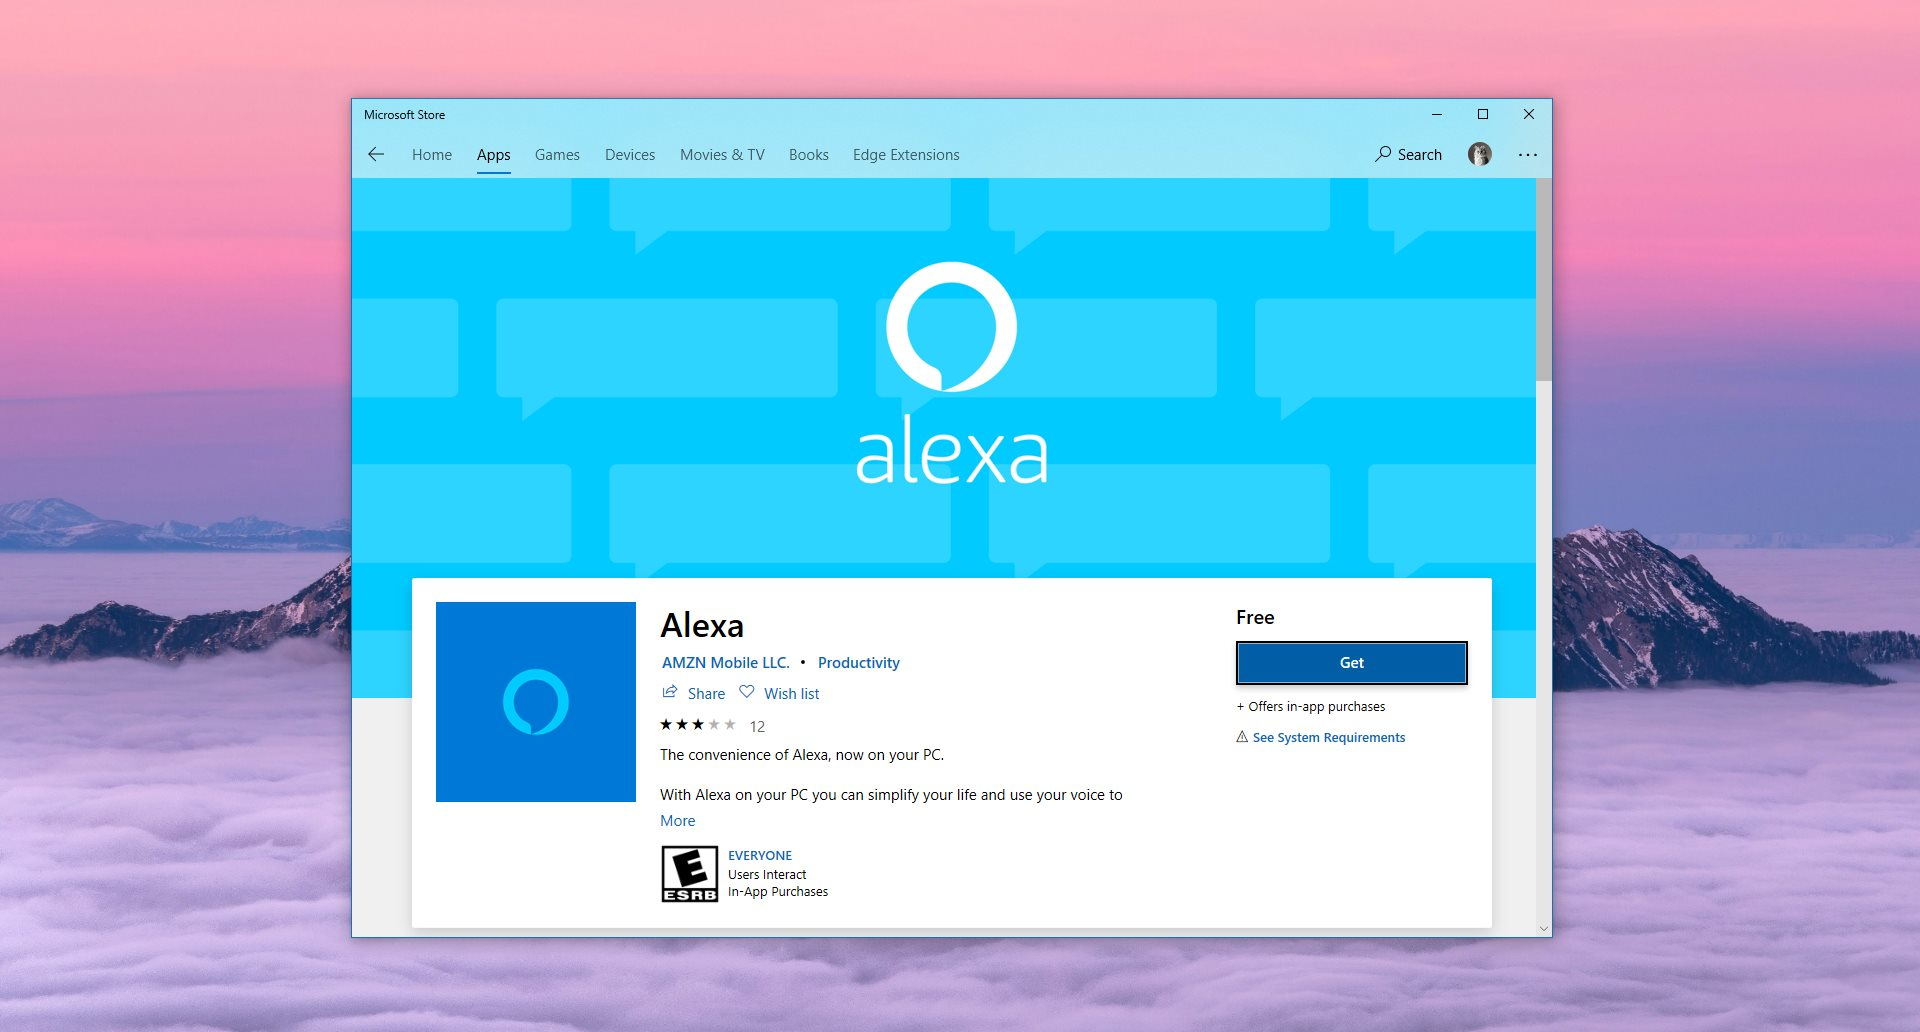 Alexa App for Windows 10 Now Available for Download